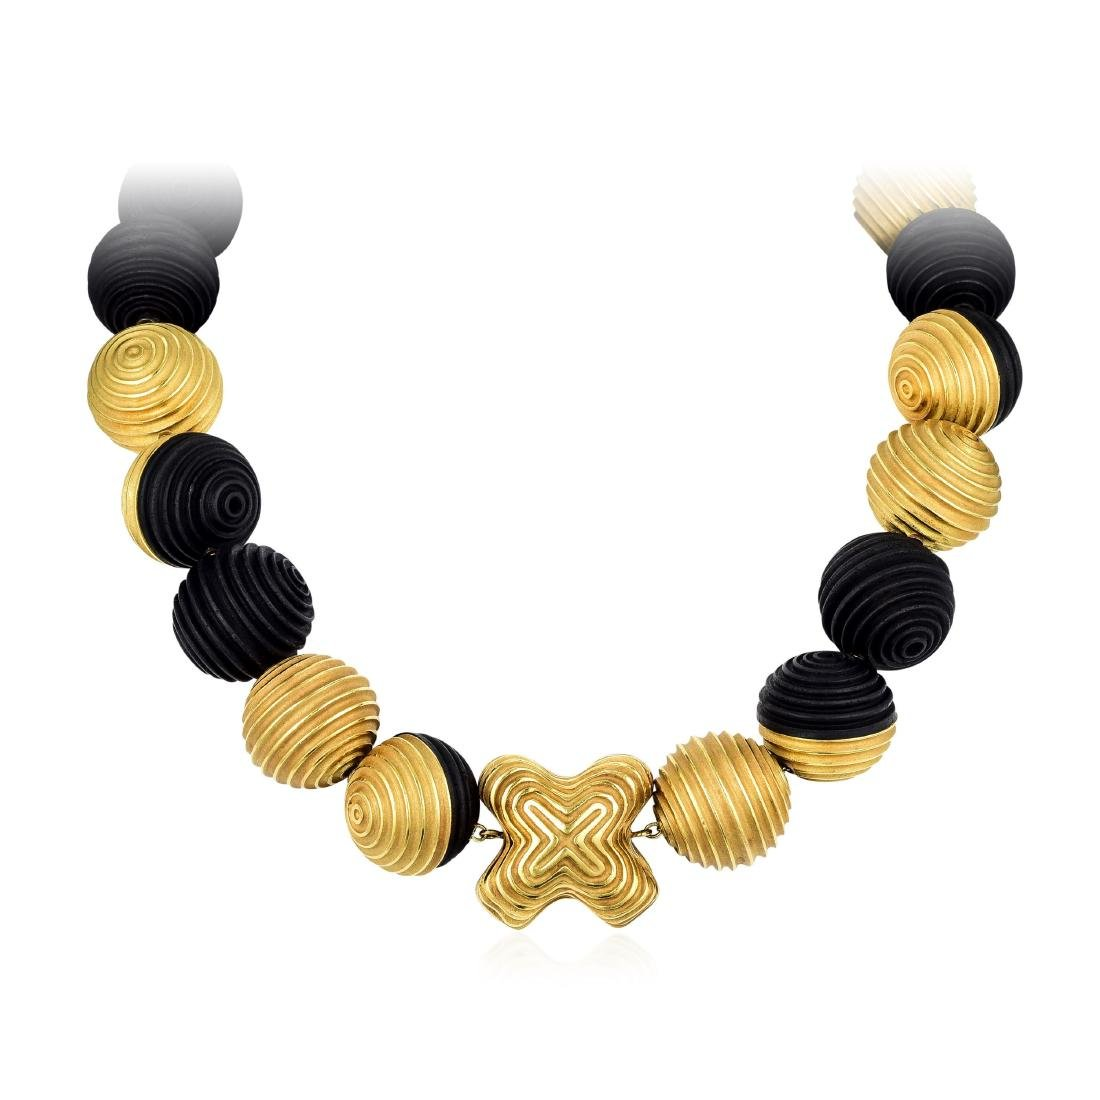 Christopher Walling Gold and Ebony Bead Necklace